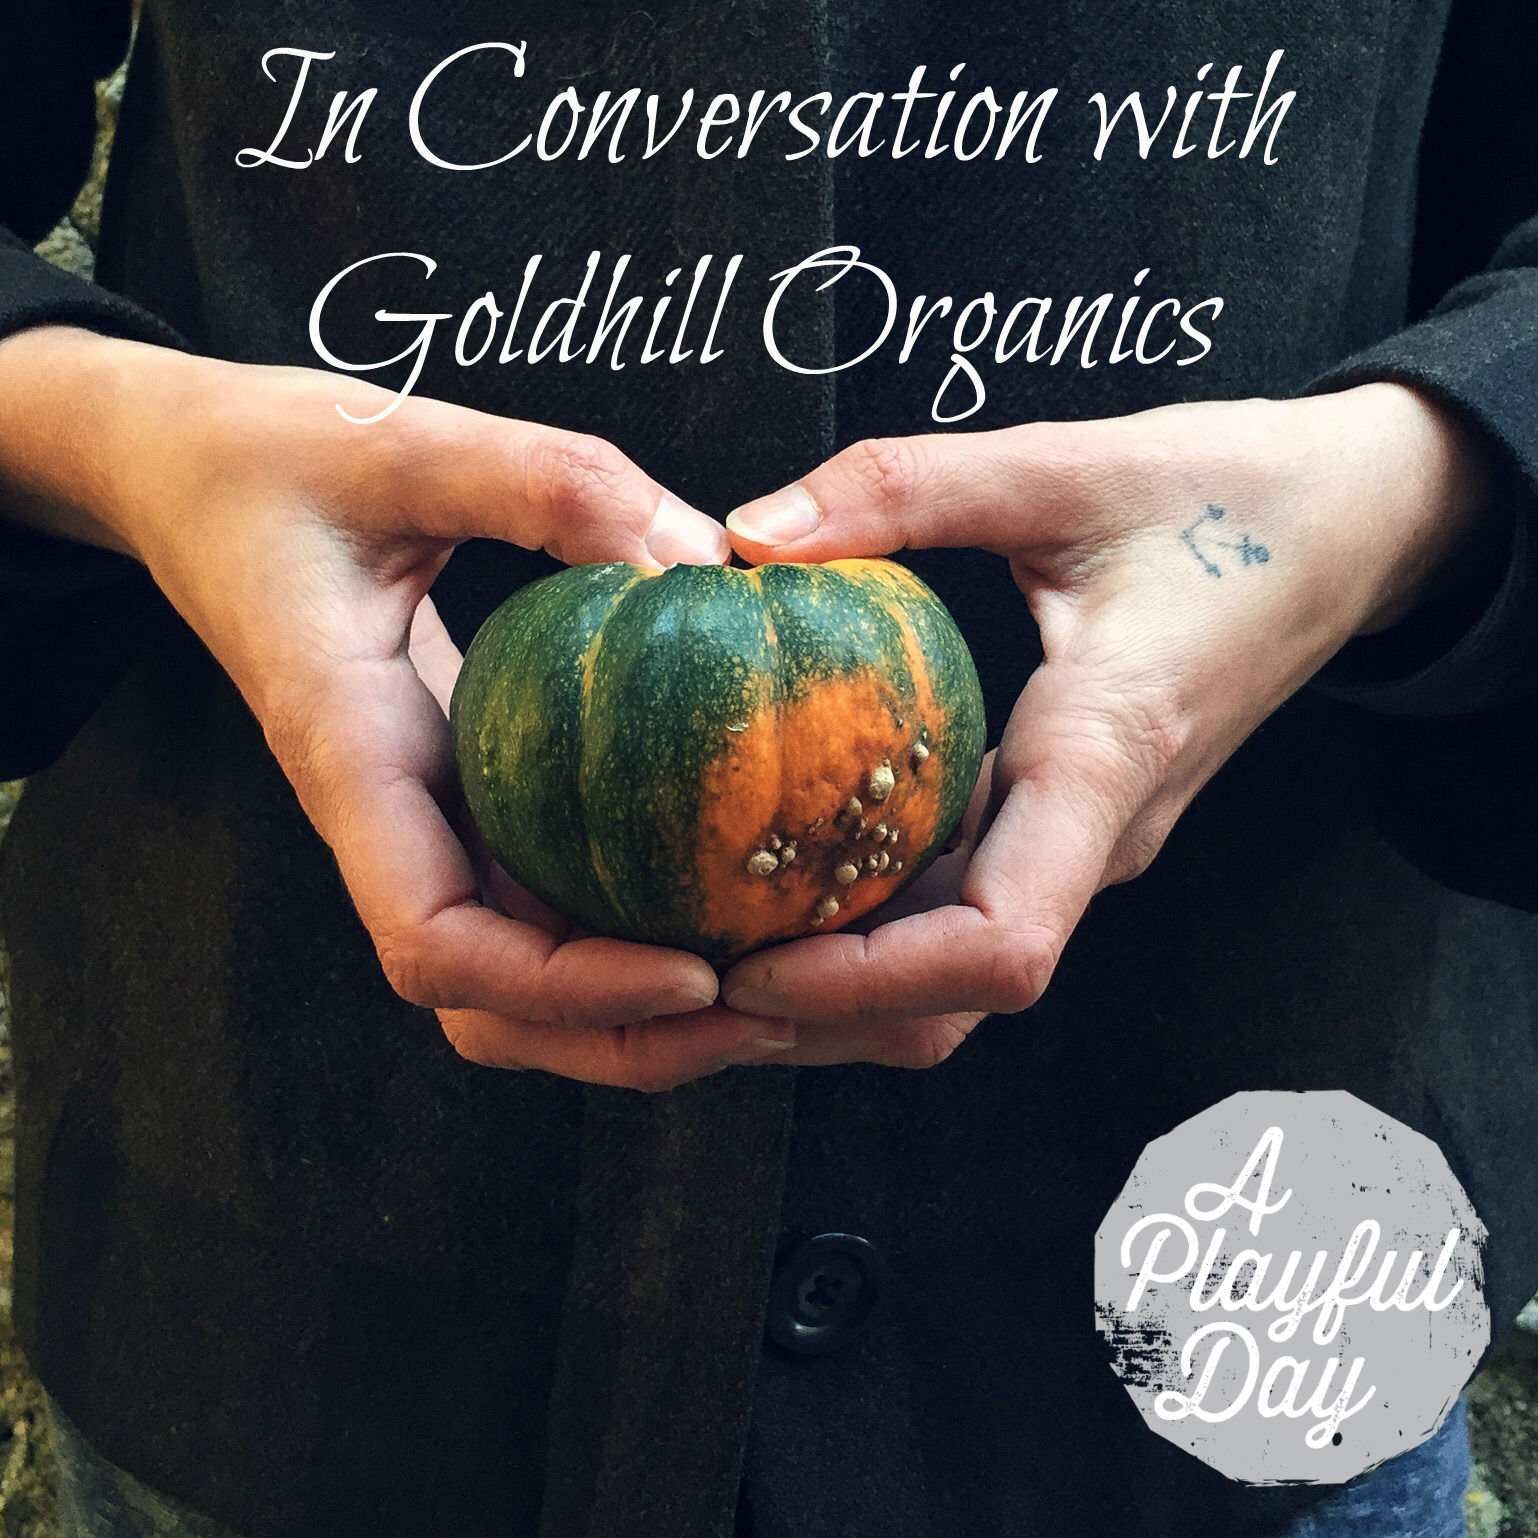 The APD Podcast, Season 3: In Conversation with Goldhill Organics